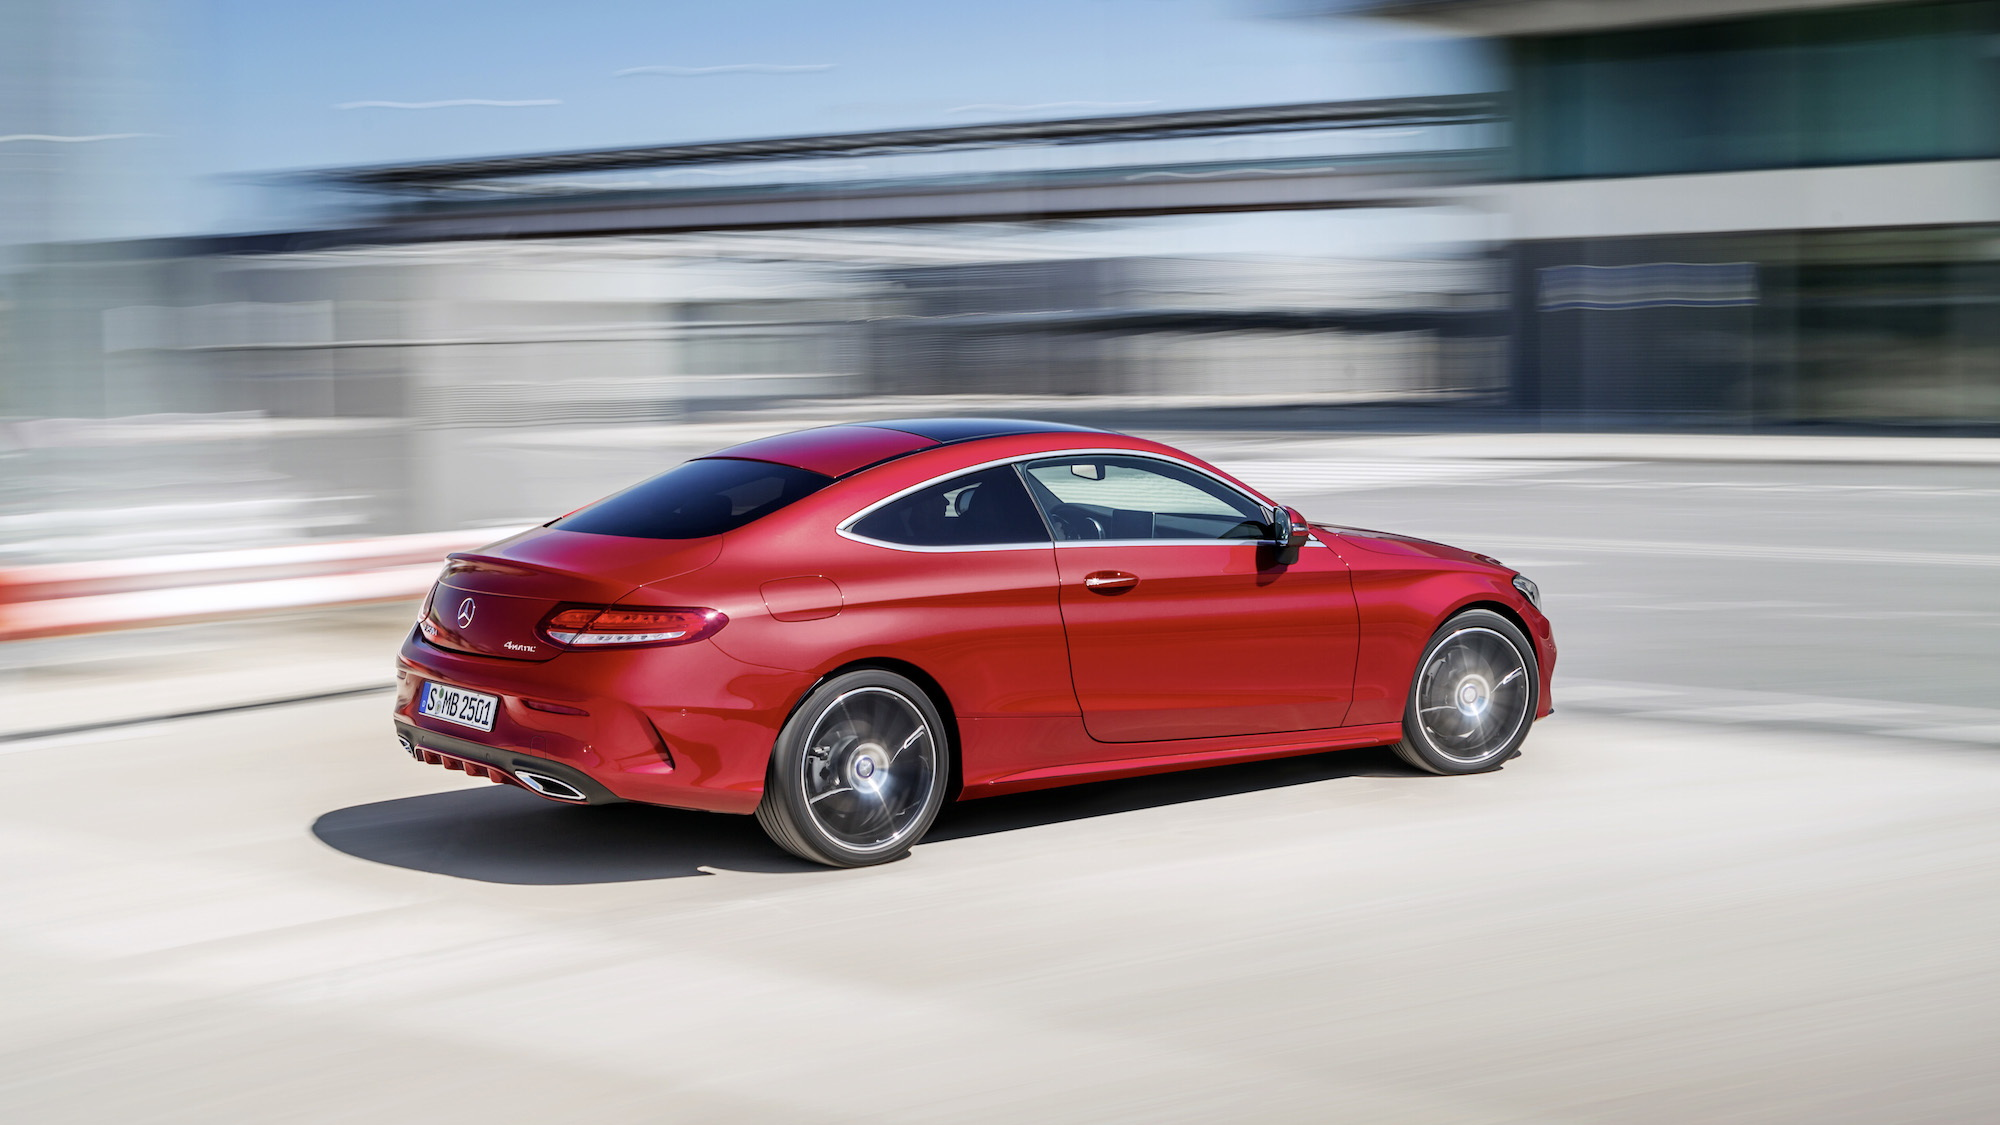 2017 Mercedes Benz C Class Coupe 2015 Frankfurt Auto Show Preview